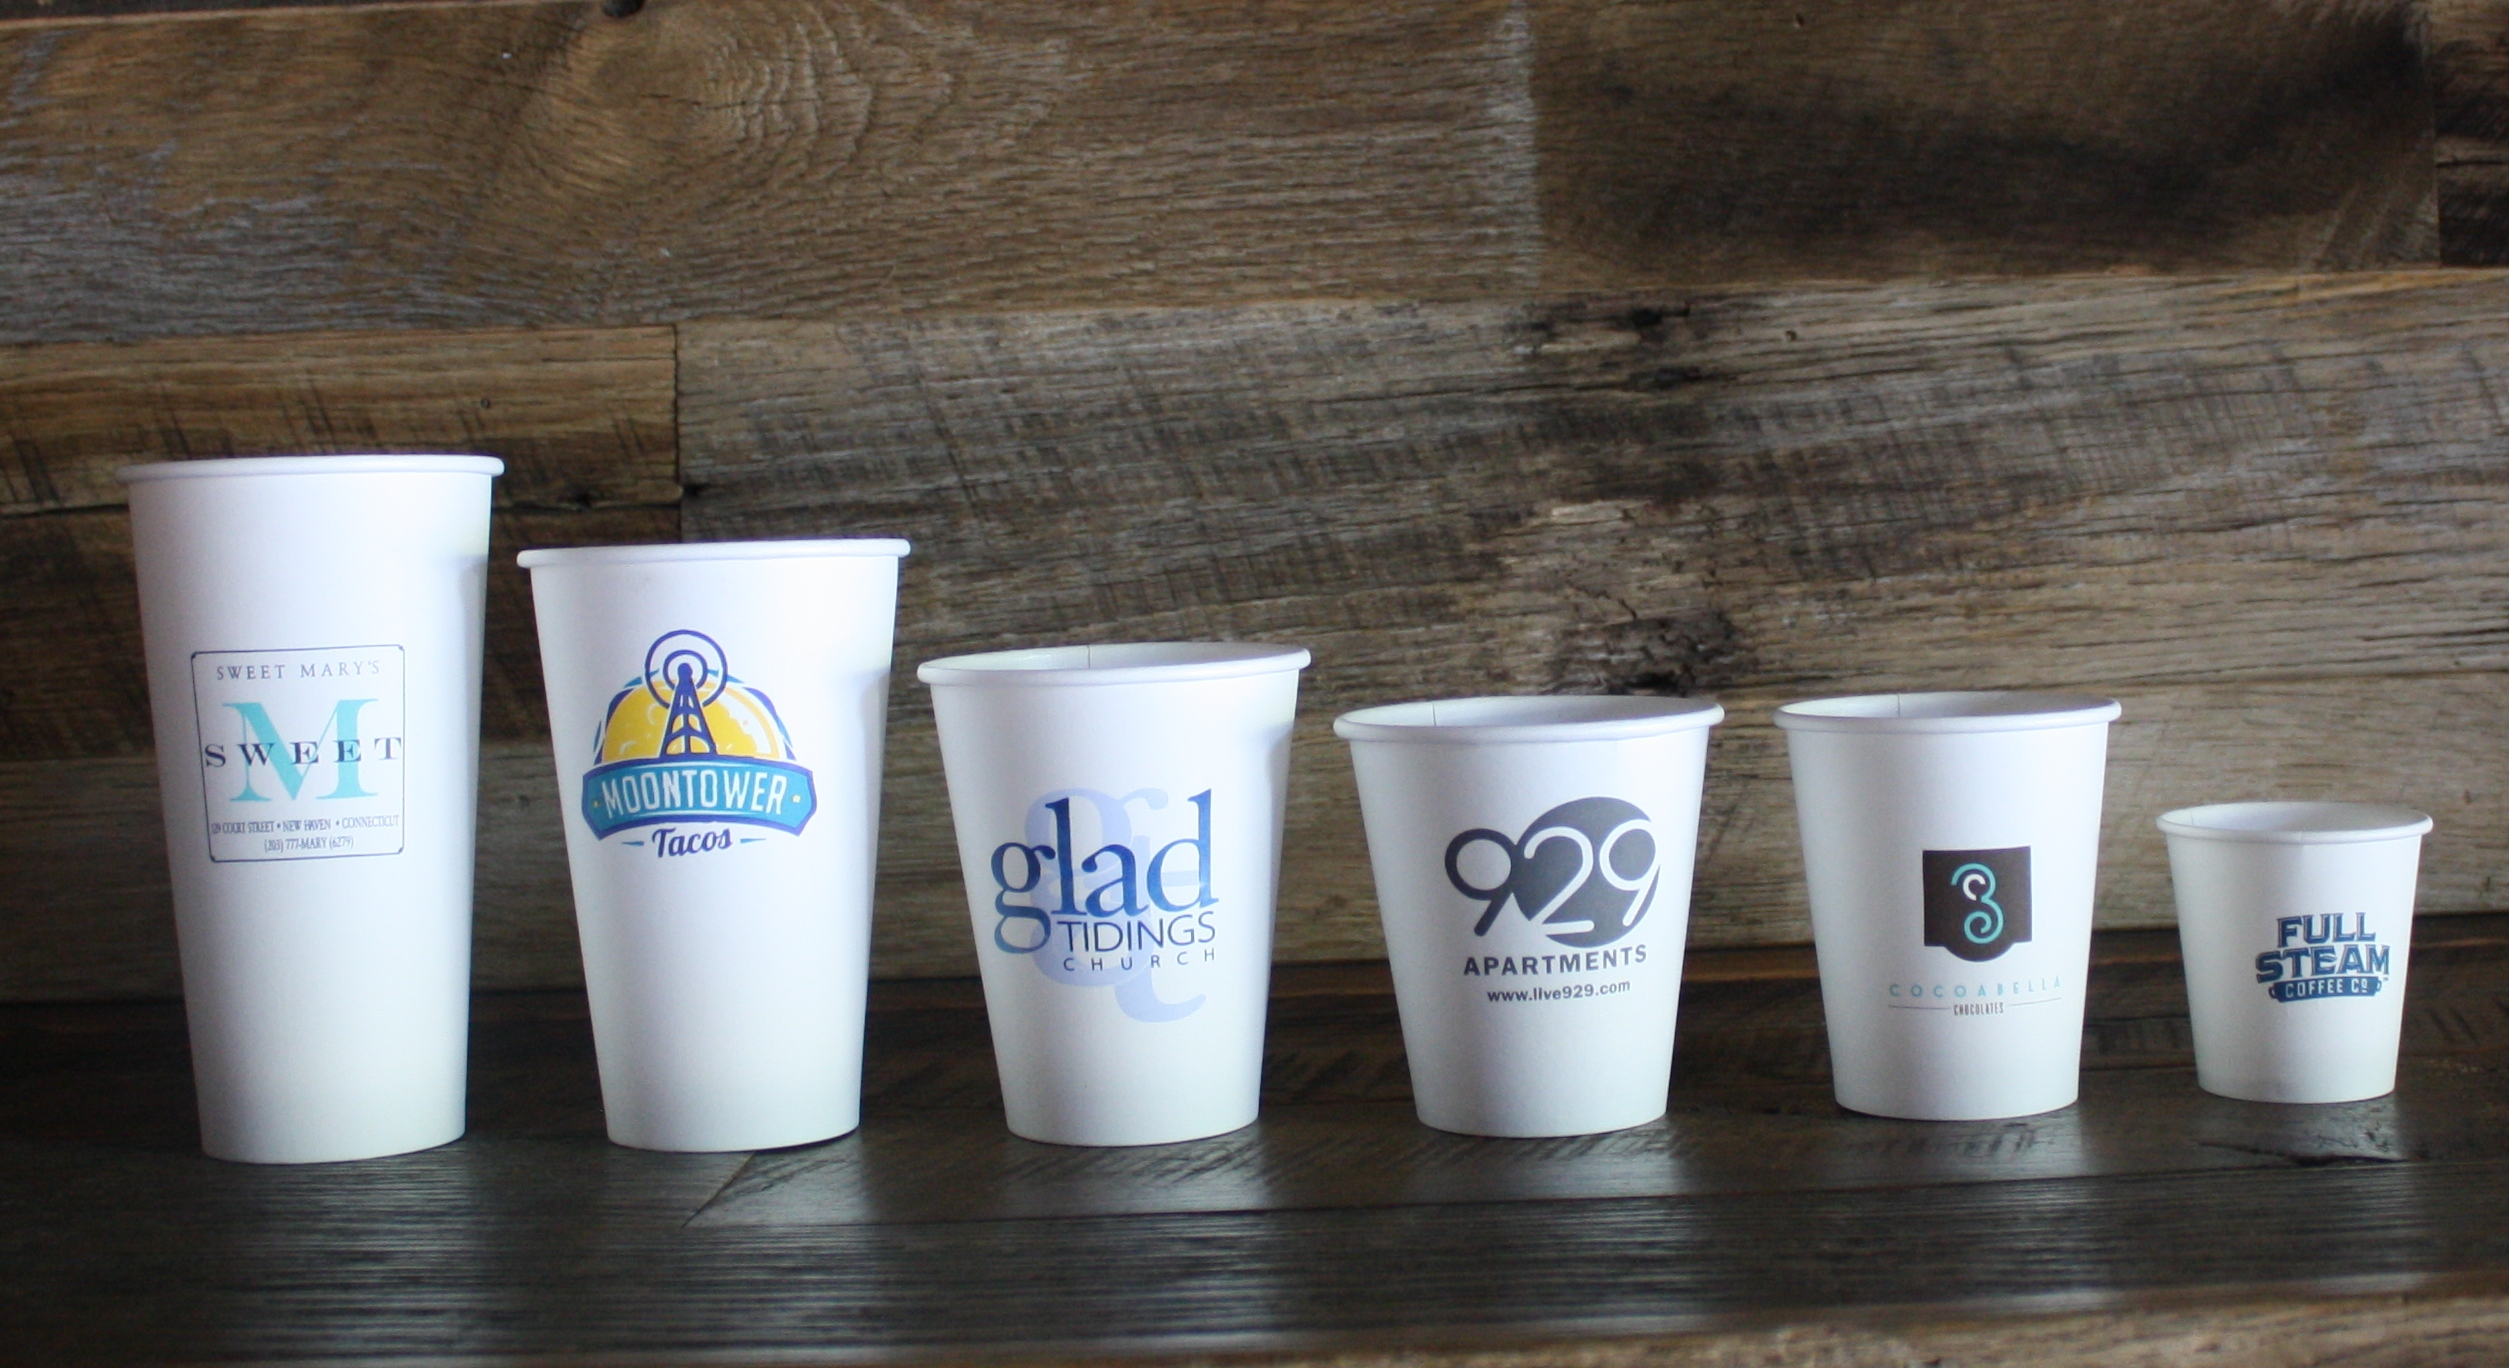 custom printed paper coffee cups Get best value bulk prices on paper coffee cups and water cups easily add your logo, writing or design and customize in full color across a number of styles.